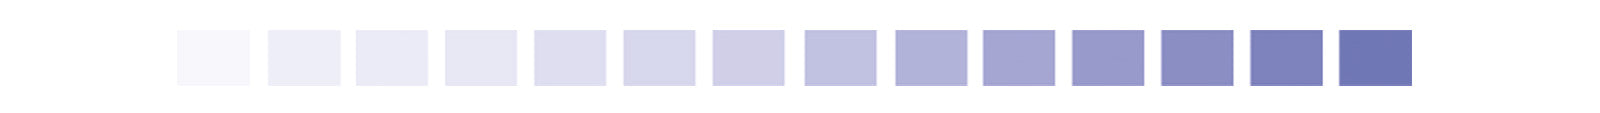 spectrum of purple rectangles